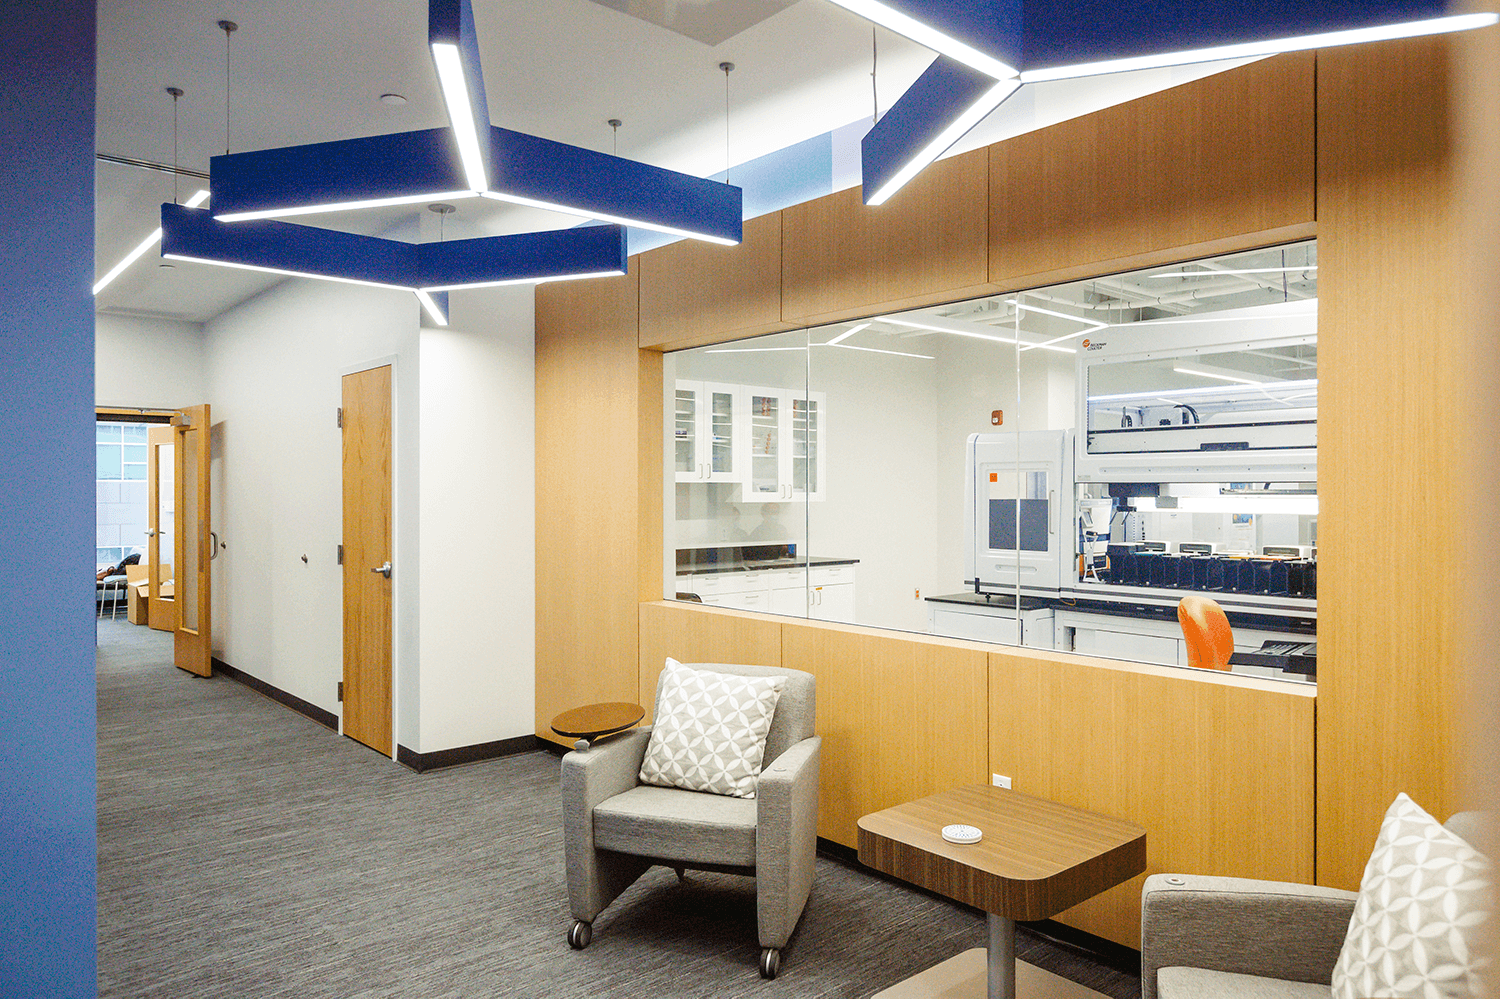 lobby area with two chairs and a window into the bio lab